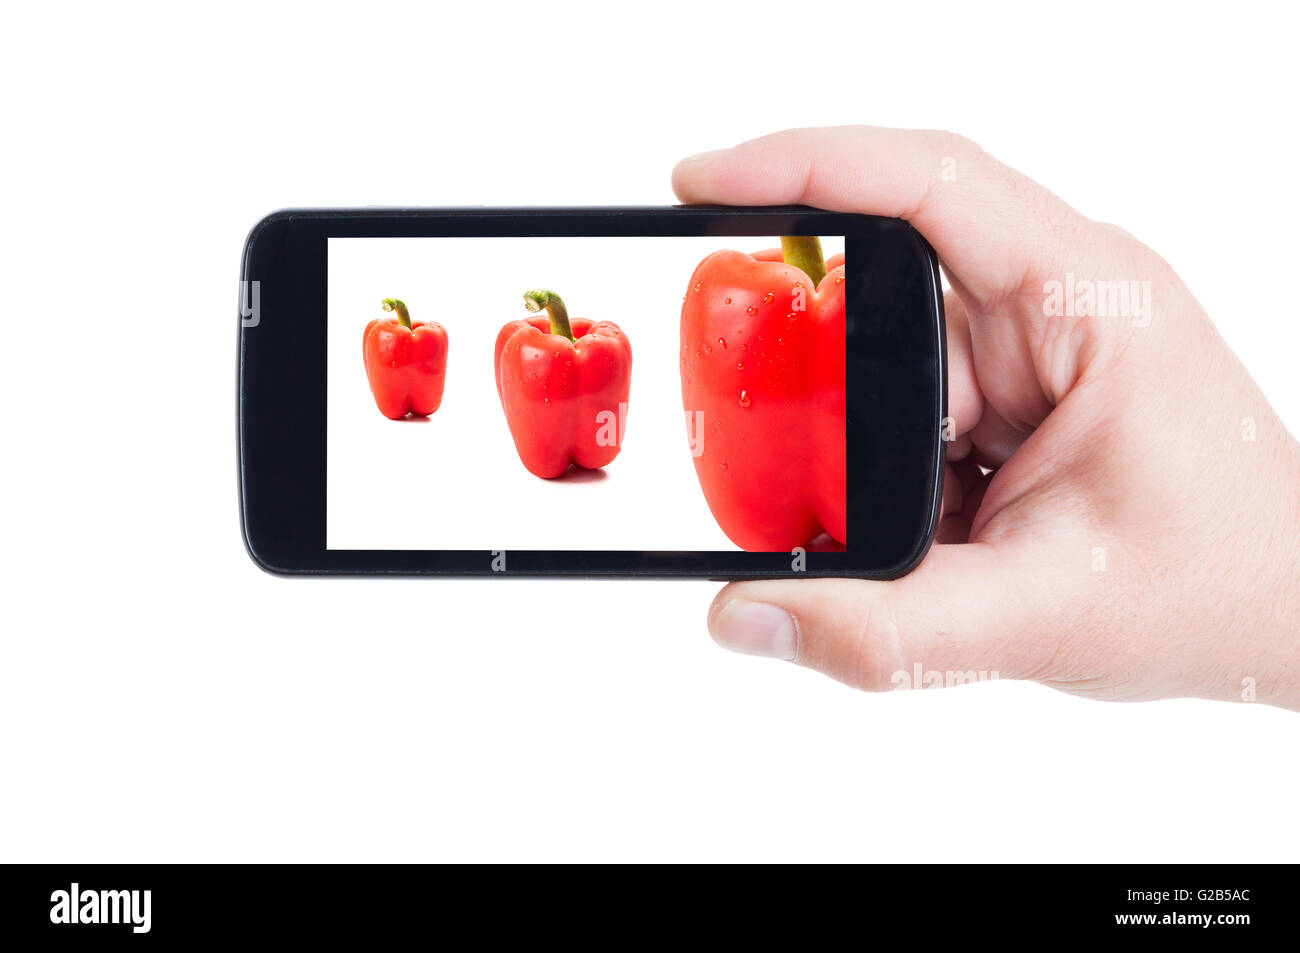 Red peppers on smartphone display or cellphone screen - Stock Image